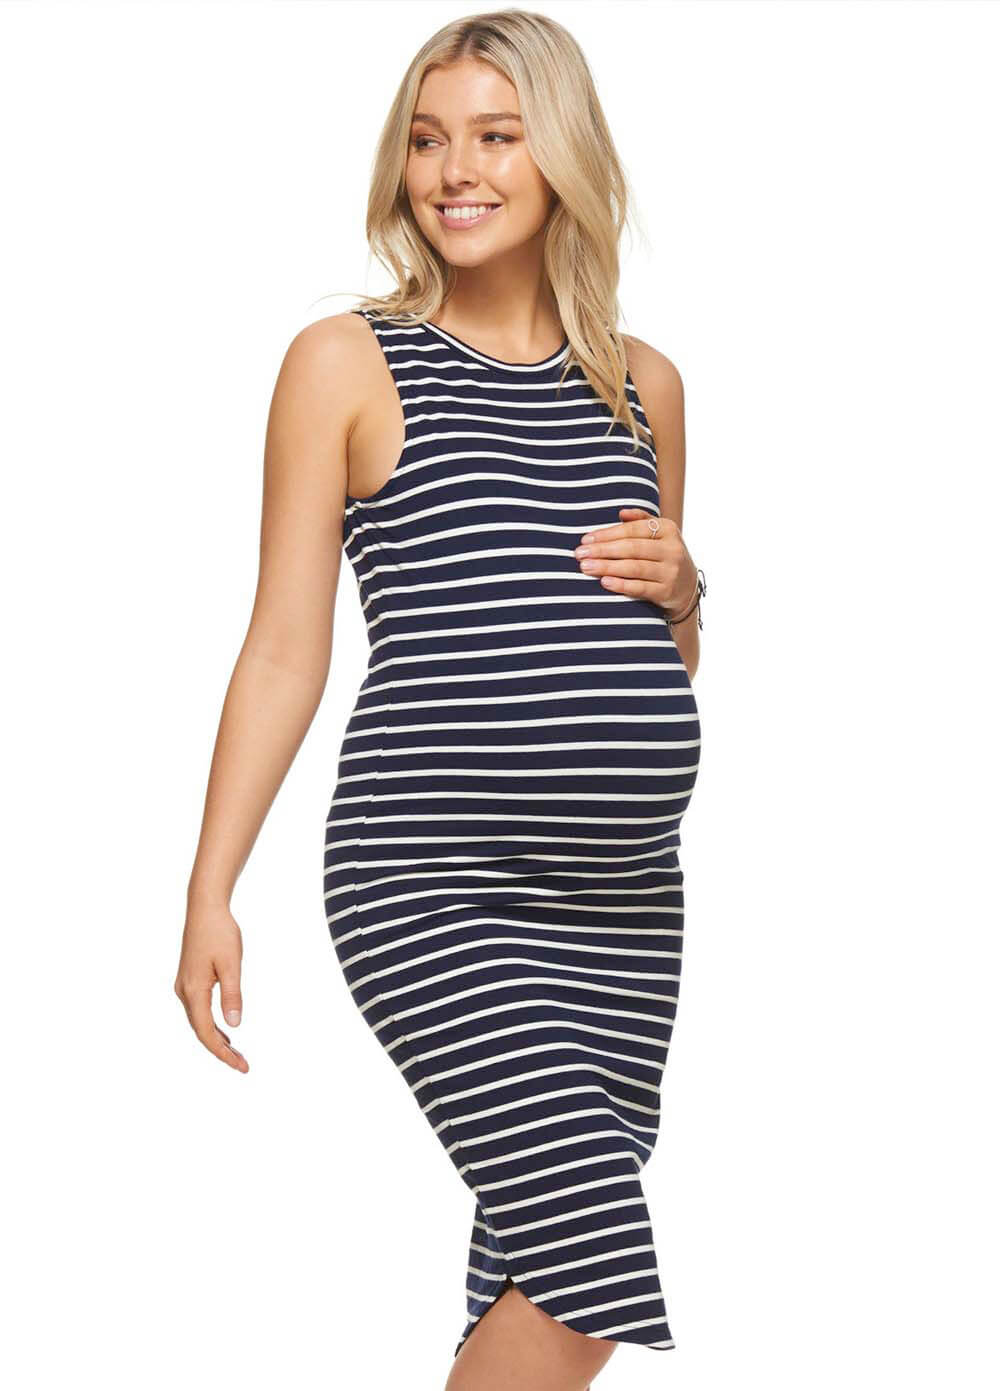 More than words maternity dress in navywhite stripes by bae ombrellifo Choice Image